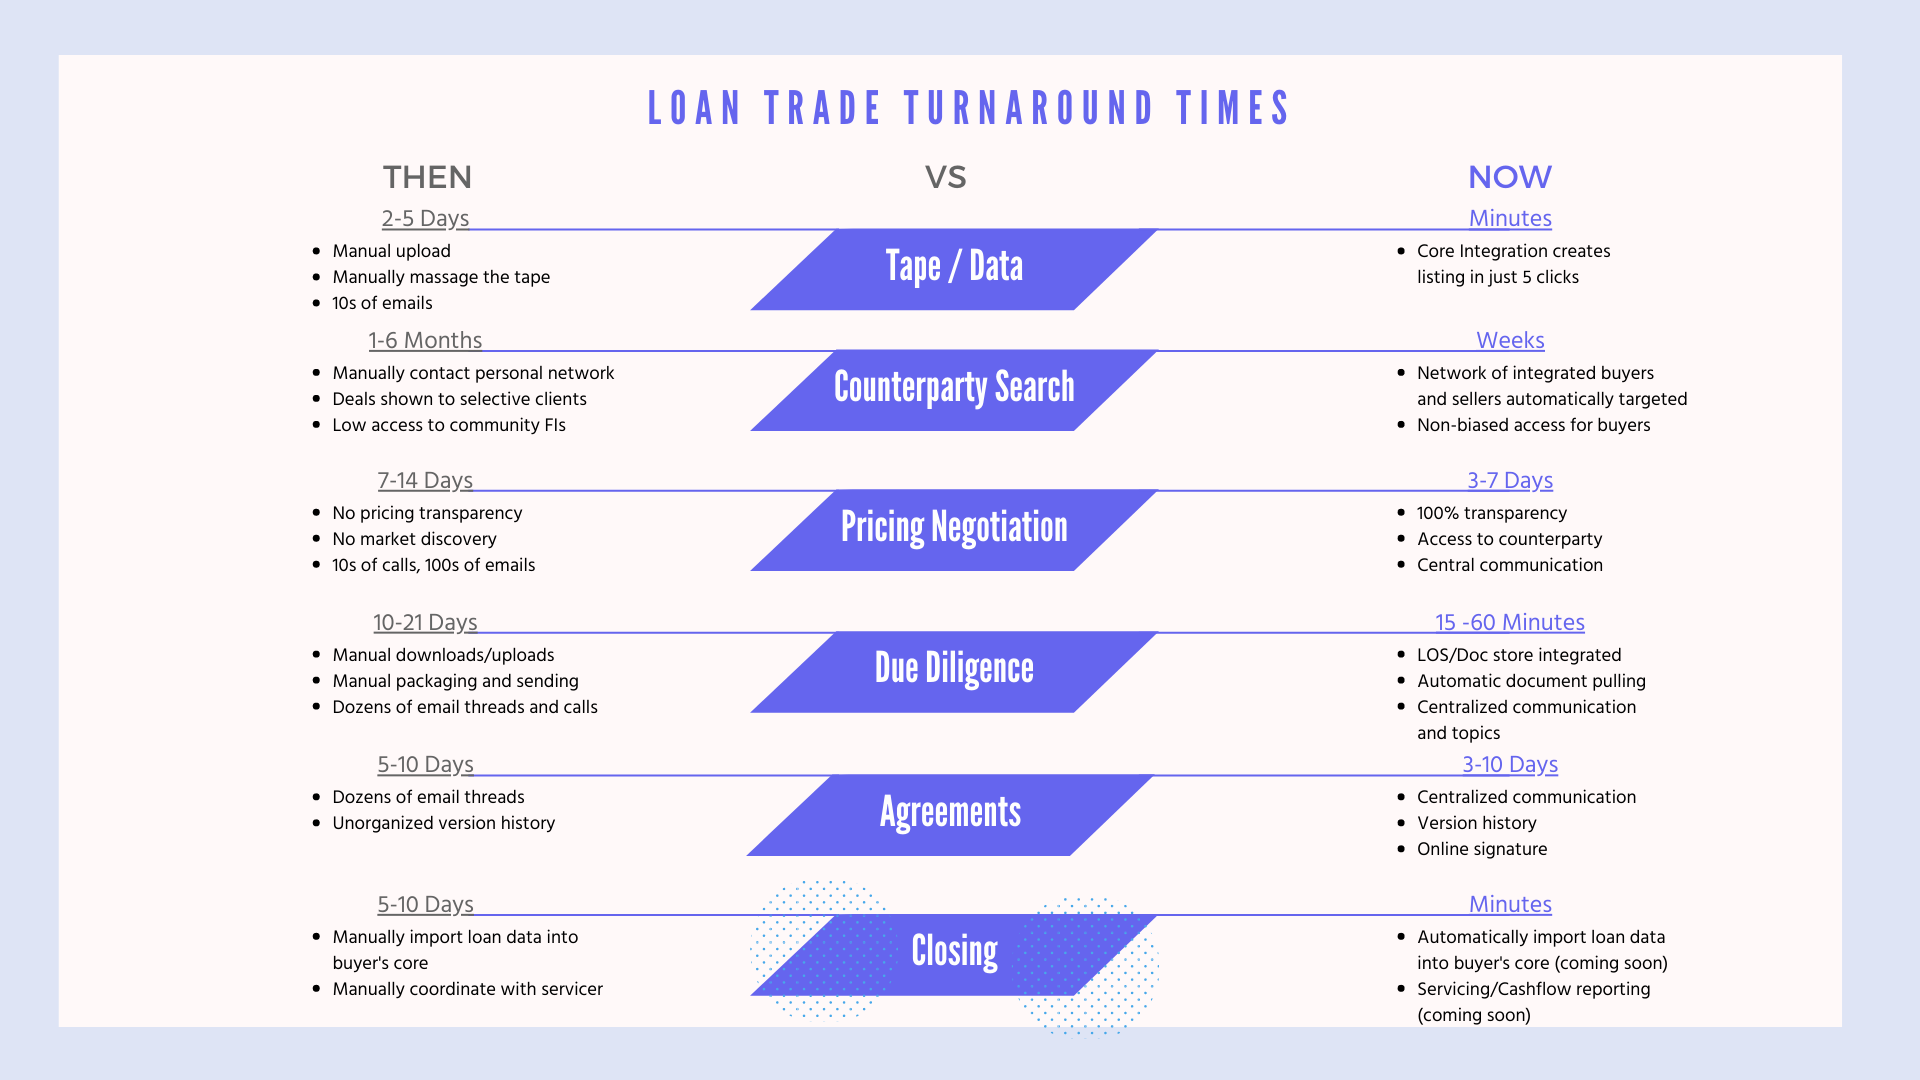 Flowchart depicting the difference in loan trade turnaround times.